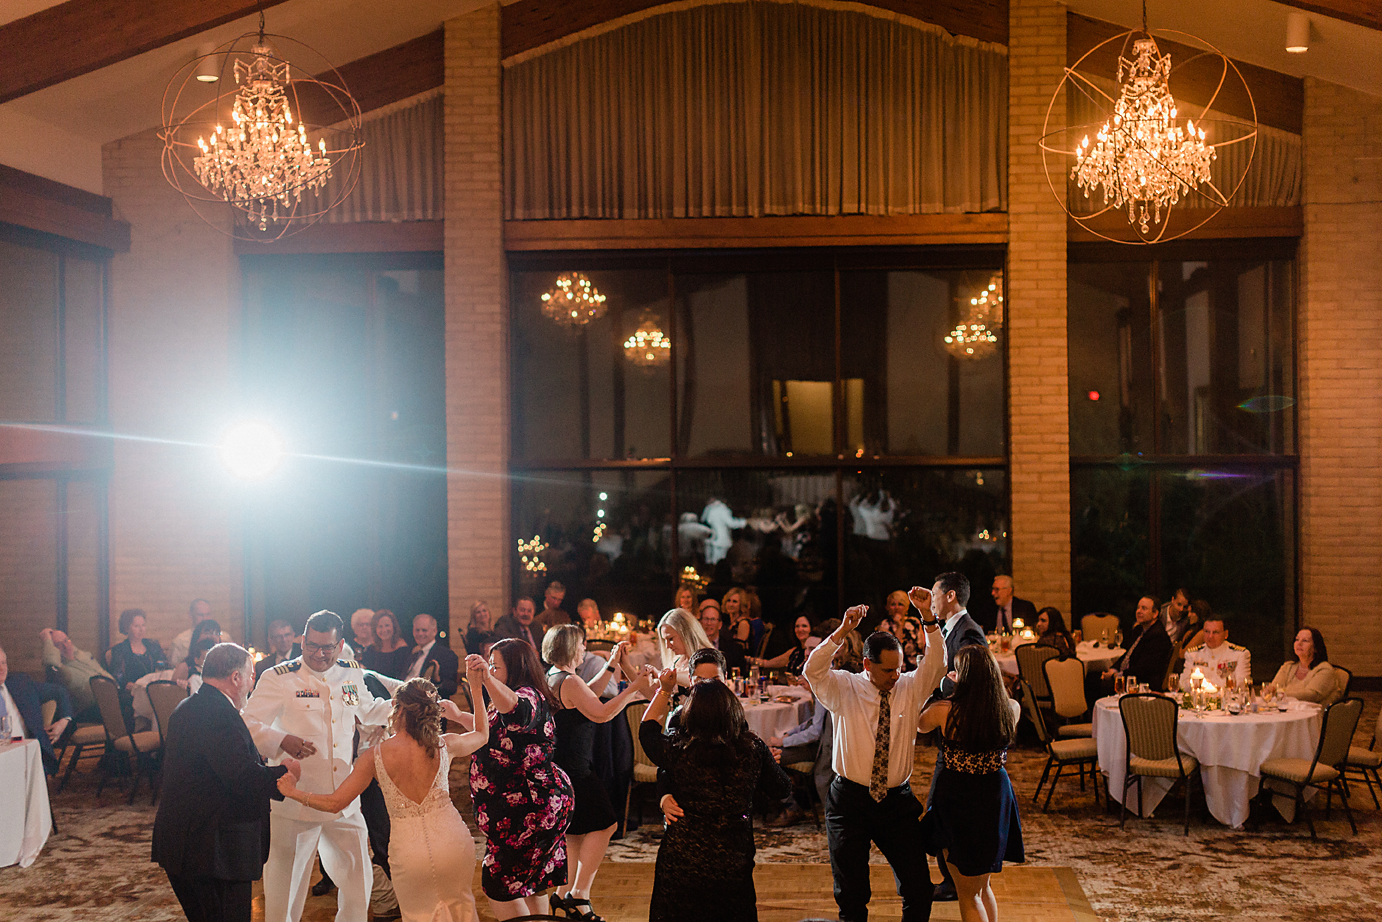 Dallas Wedding photographer Las Colinas Country Club reception dancing Kate Marie Portraiture.png